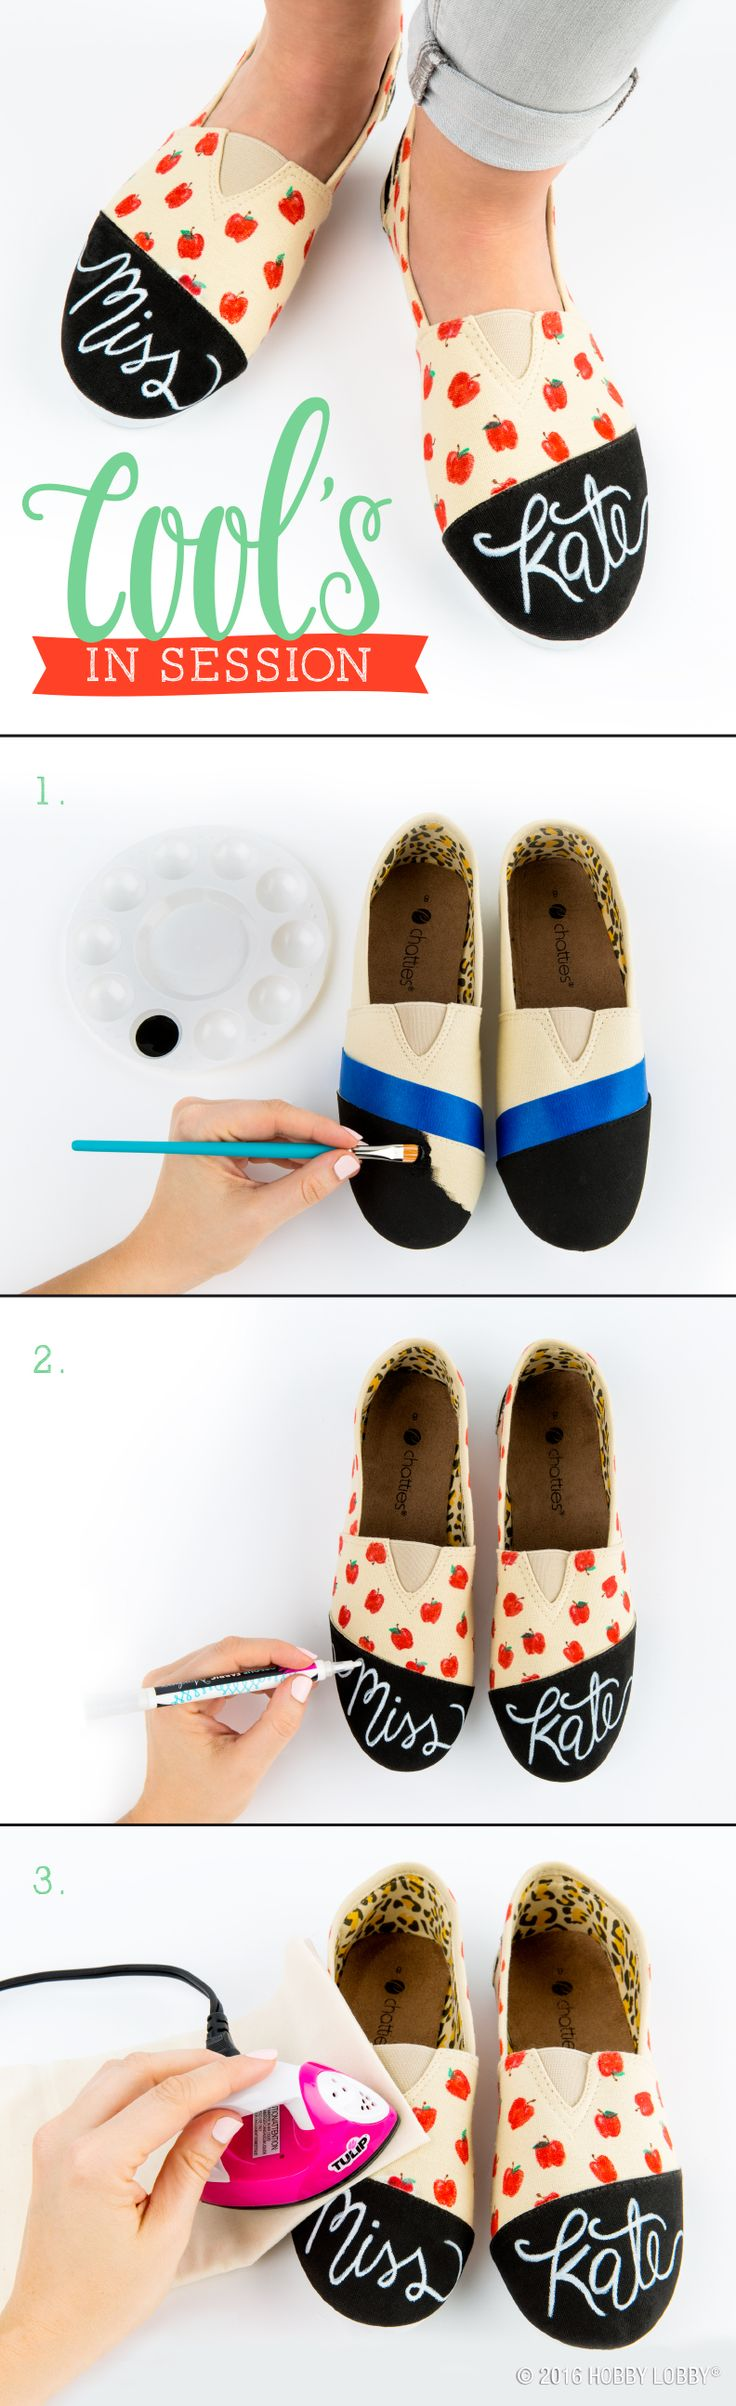 Wear your masterpieces by adding your own personal style to canvas shoes with paint and fabric markers!